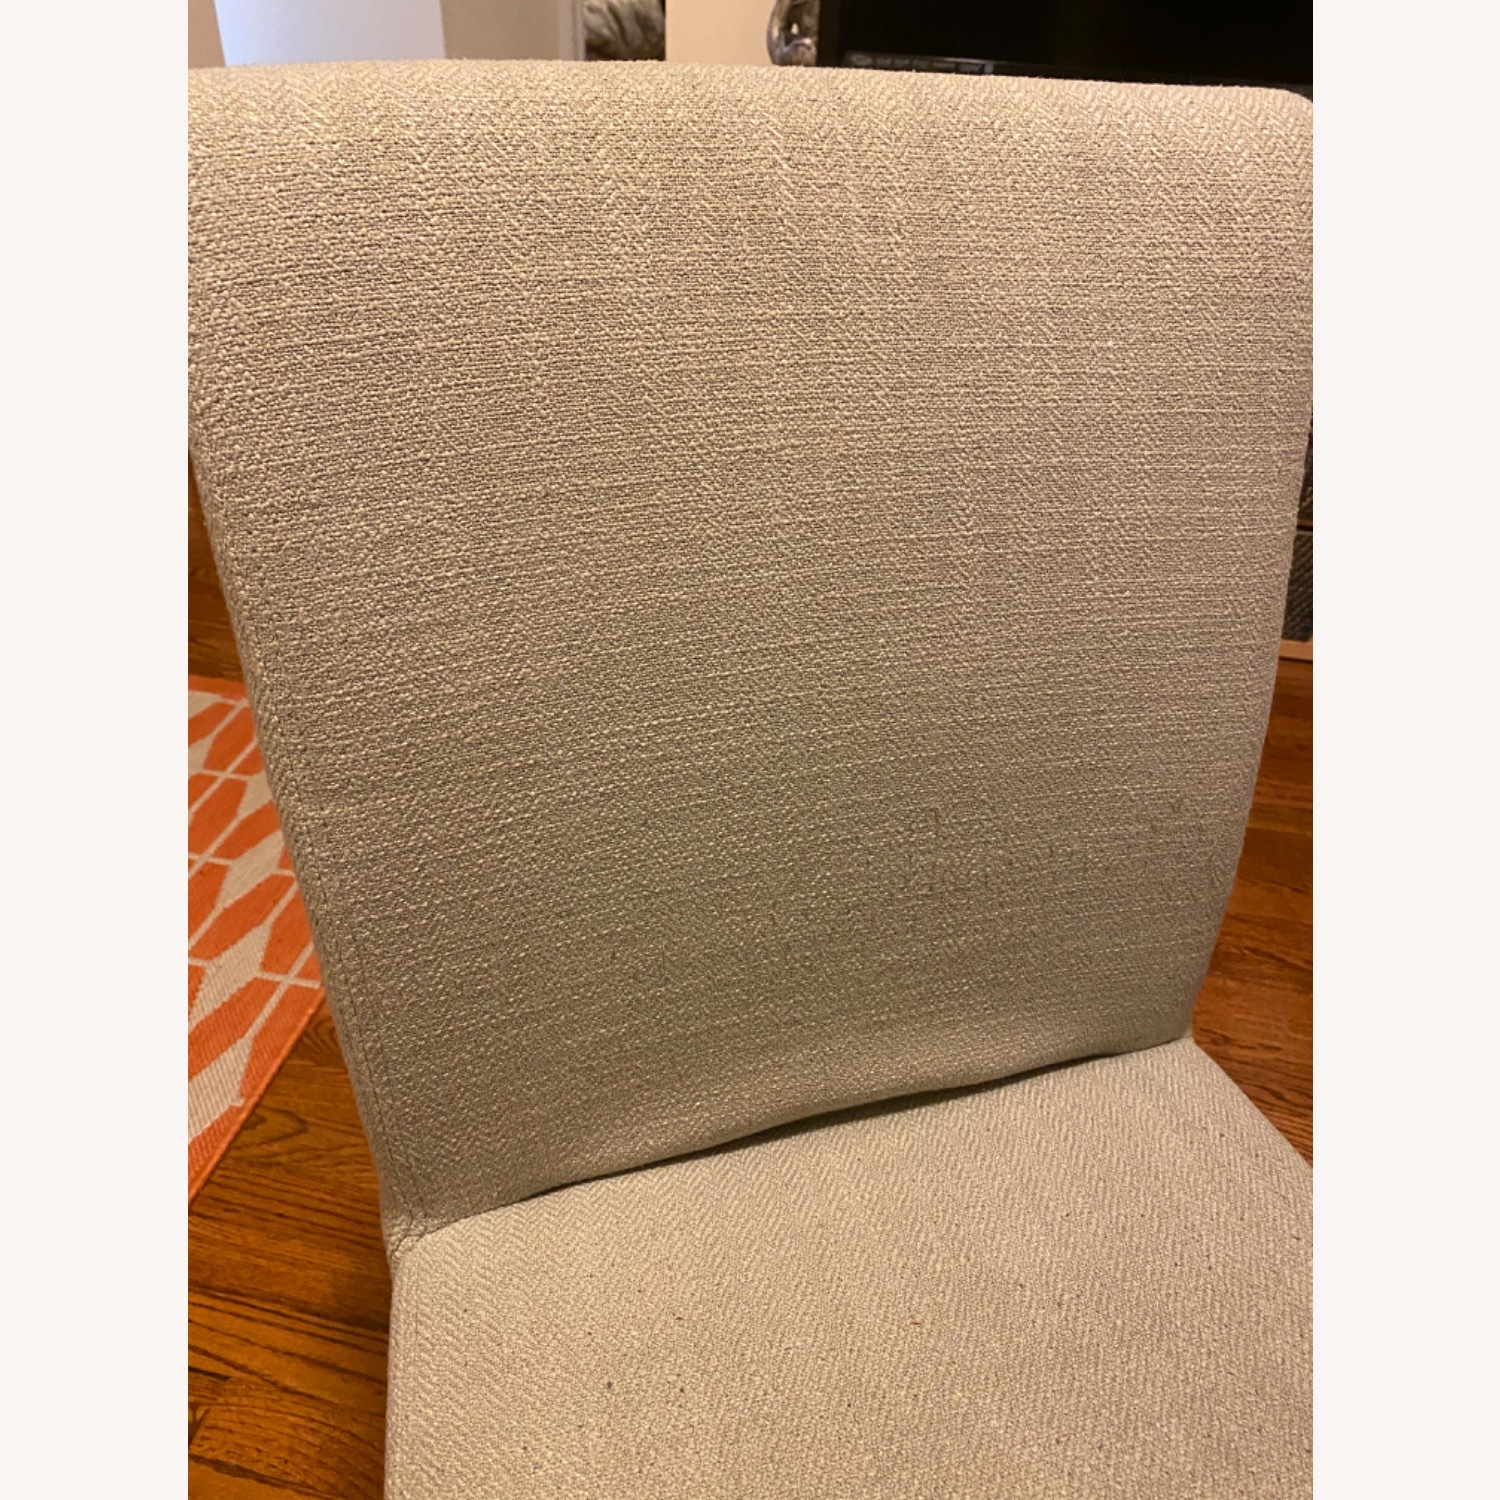 Crate & Barrel Lowe Chair Pewter Fabric (Set of 4) - image-3